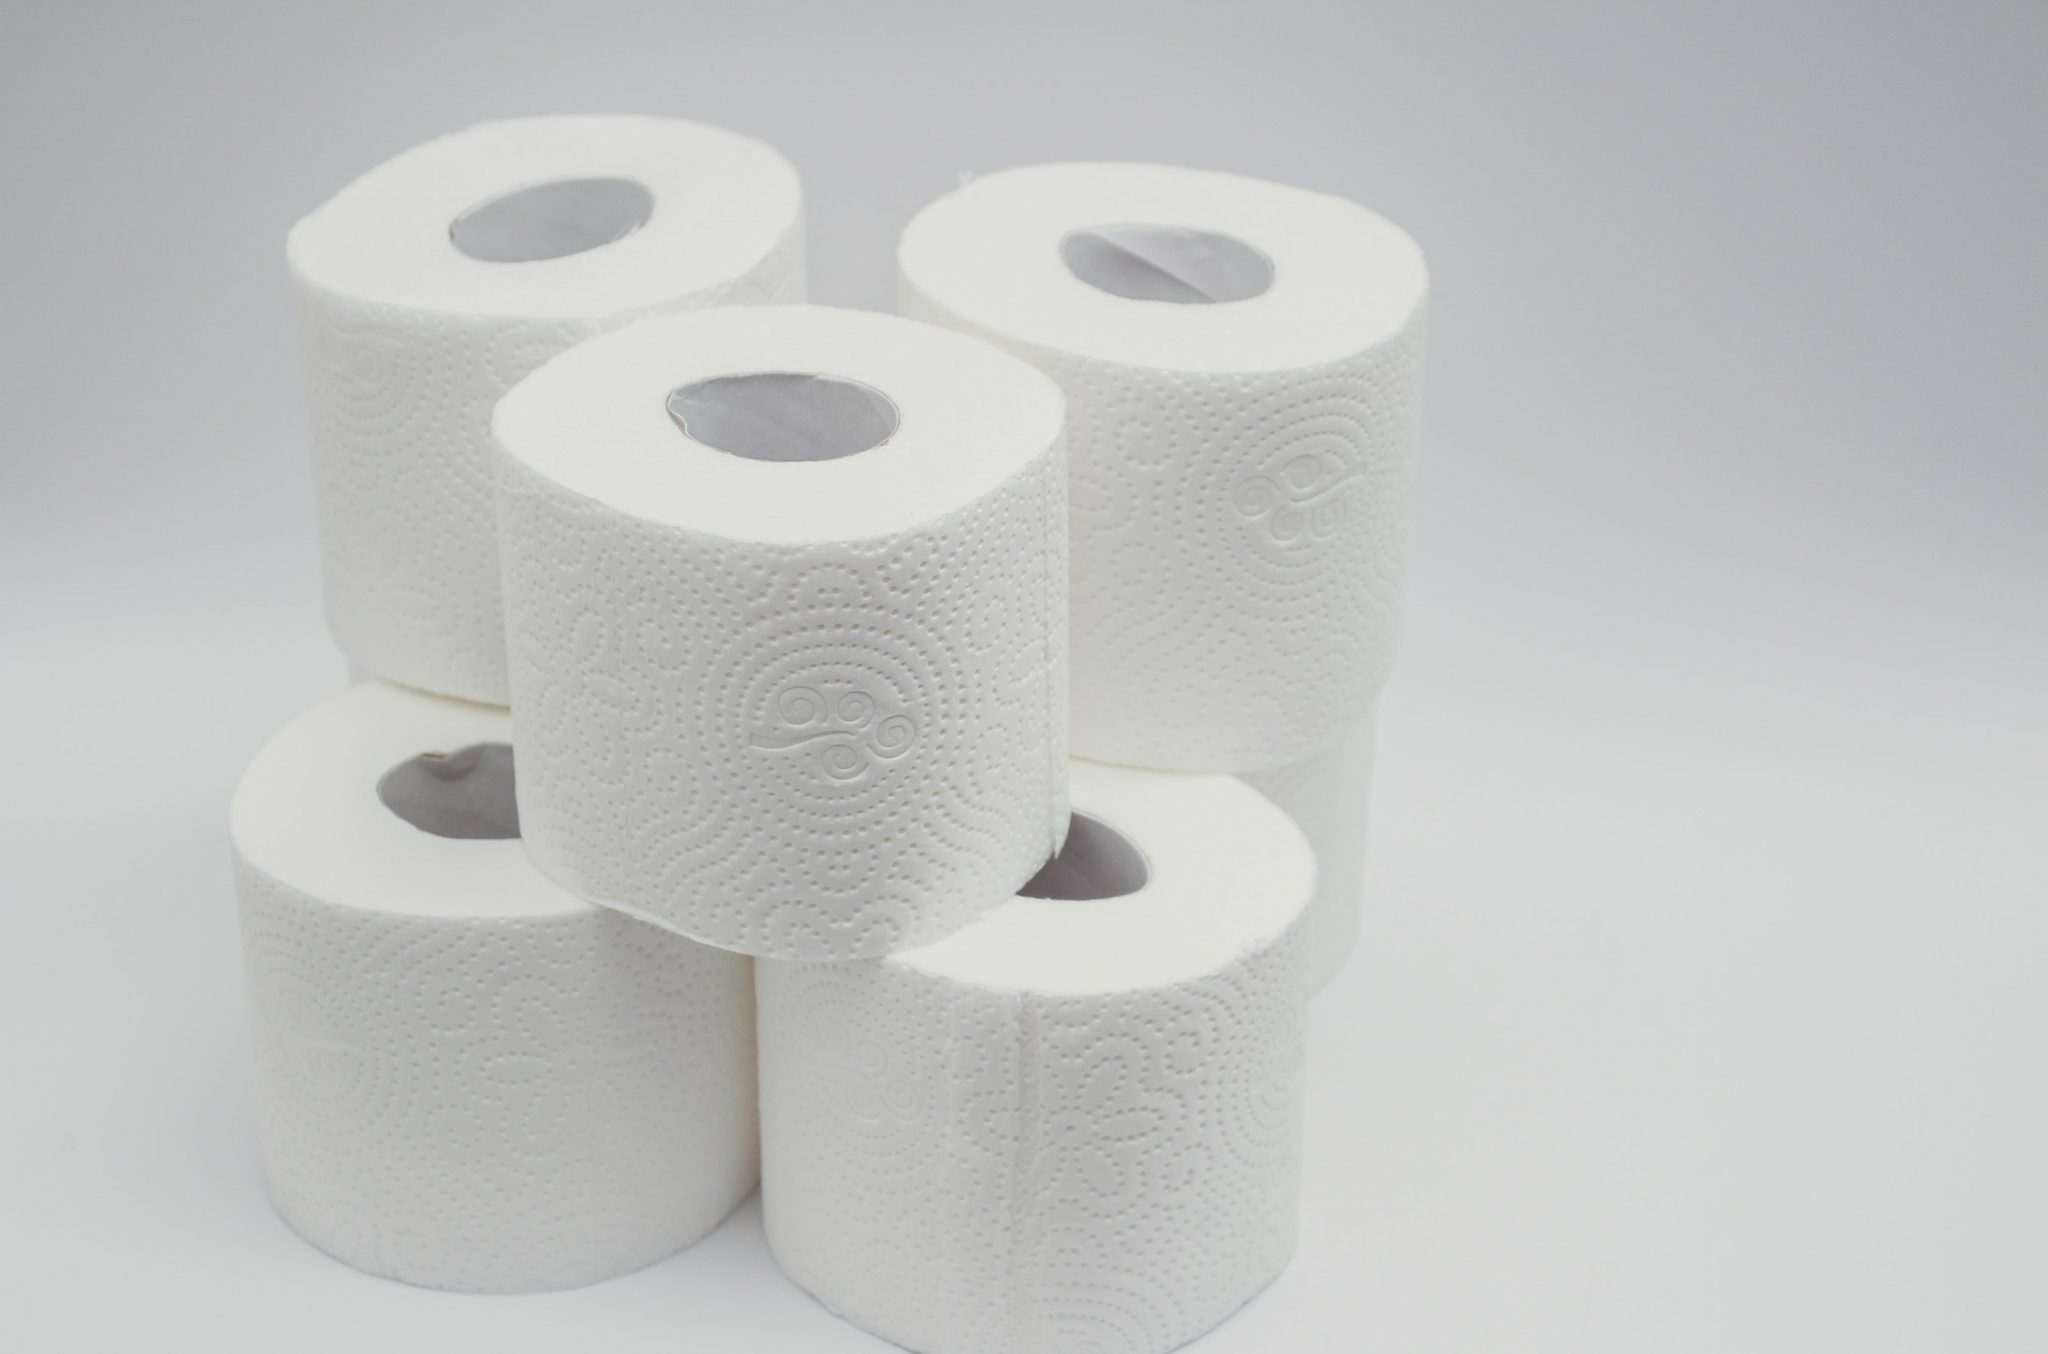 Allergies to Toilet and Tissue Paper, Part 1 - Default to Nature